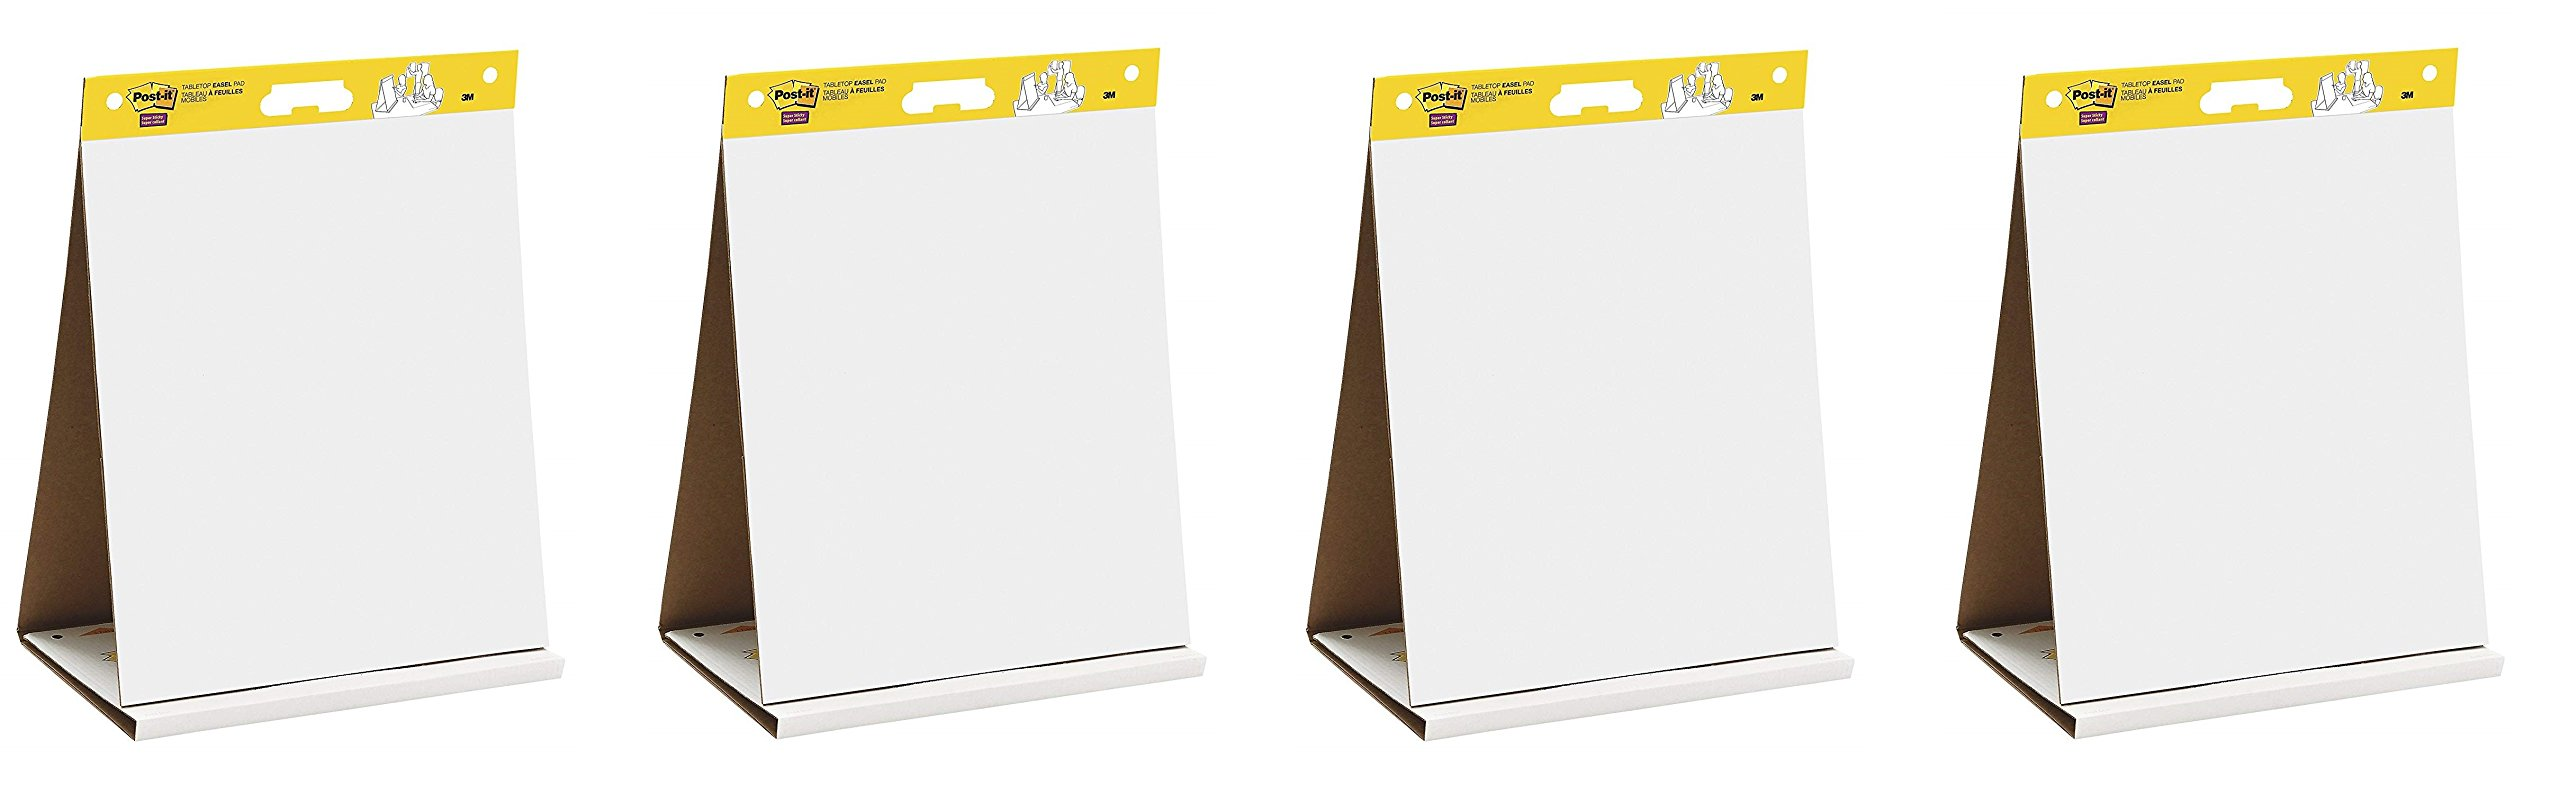 Post-it Super Sticky Tabletop Easel Pad, 20 x 23 inches, 20 Sheets/Pad, 1 Pad (563 DE), Portable White Premium Self Stick Flip Chart Paper, Dry Erase Panel, Built-in Easel Stand (Pack of 4)